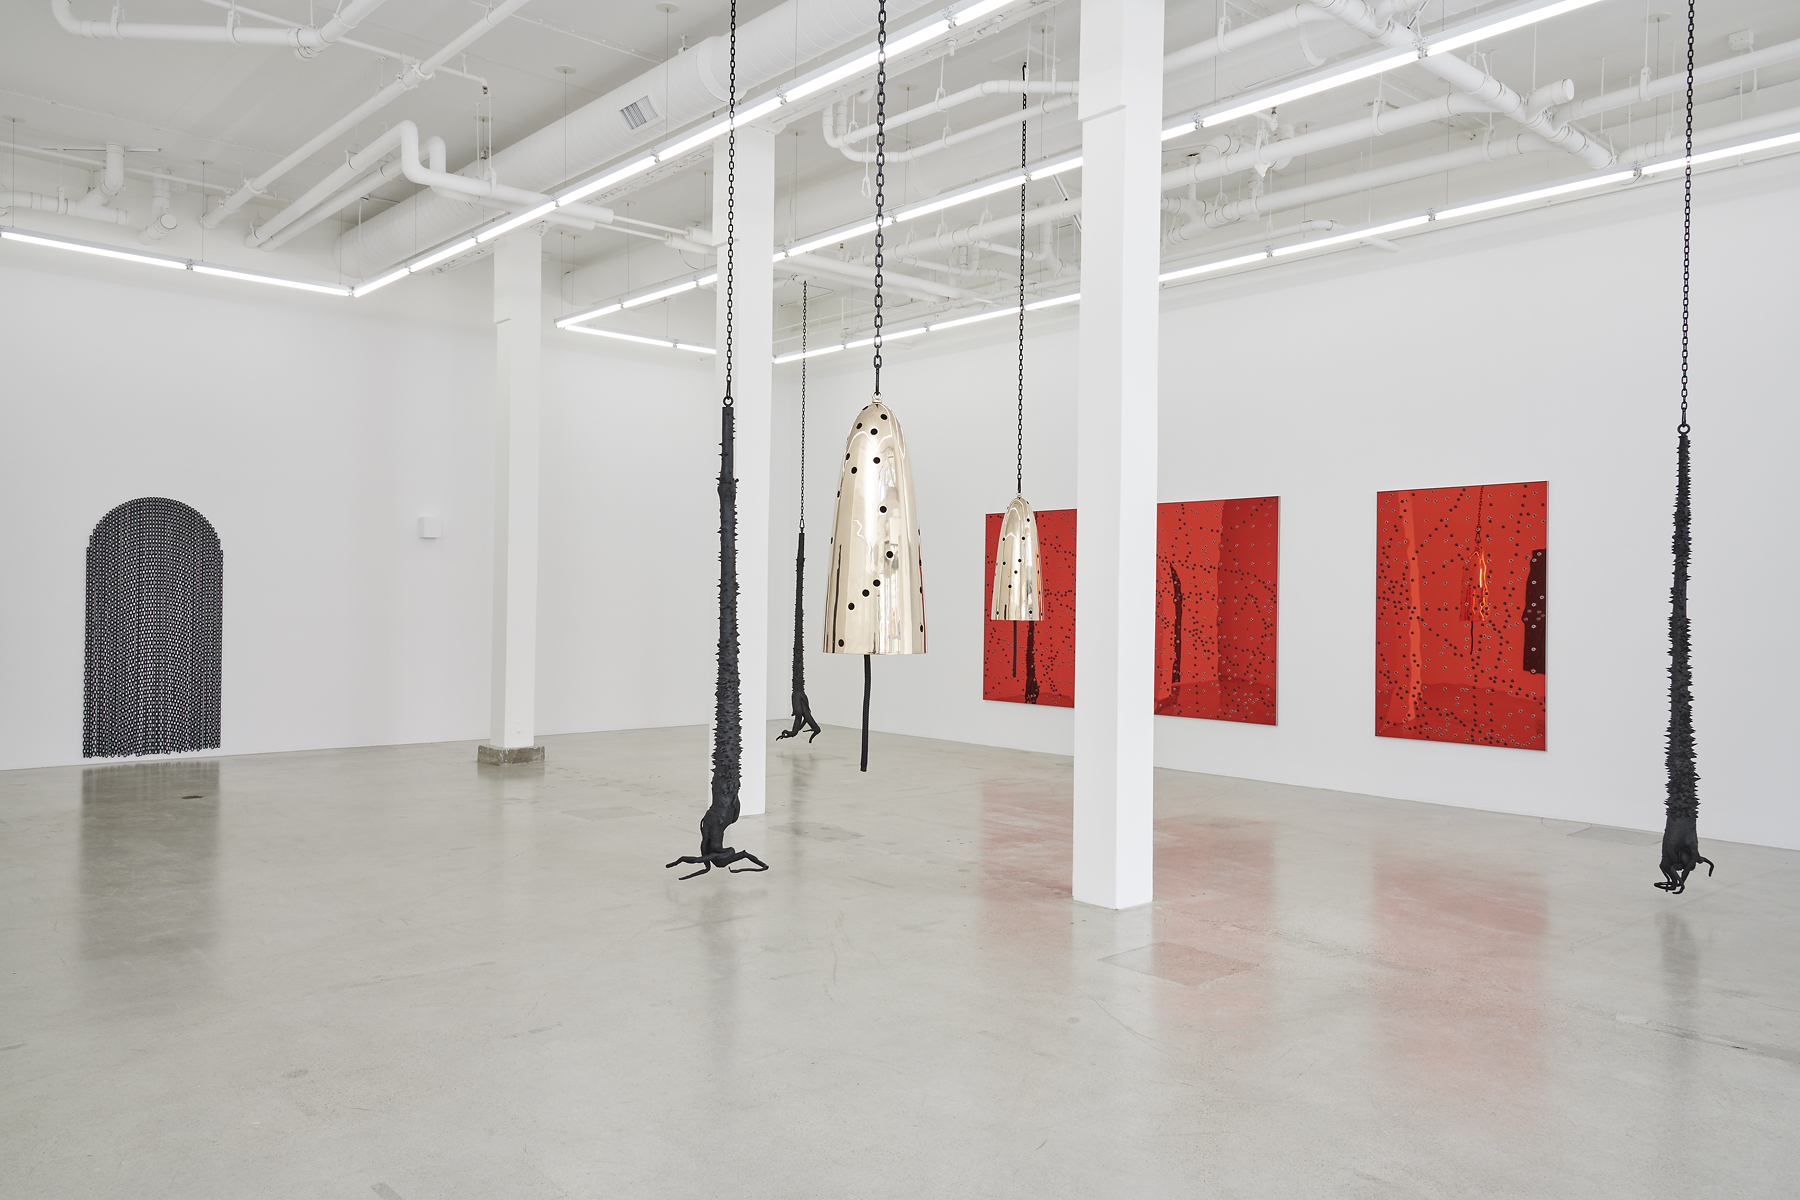 Semo_Precarious Hardware, 2019_Jessica Silverman Gallery_Installation view 03.jpg